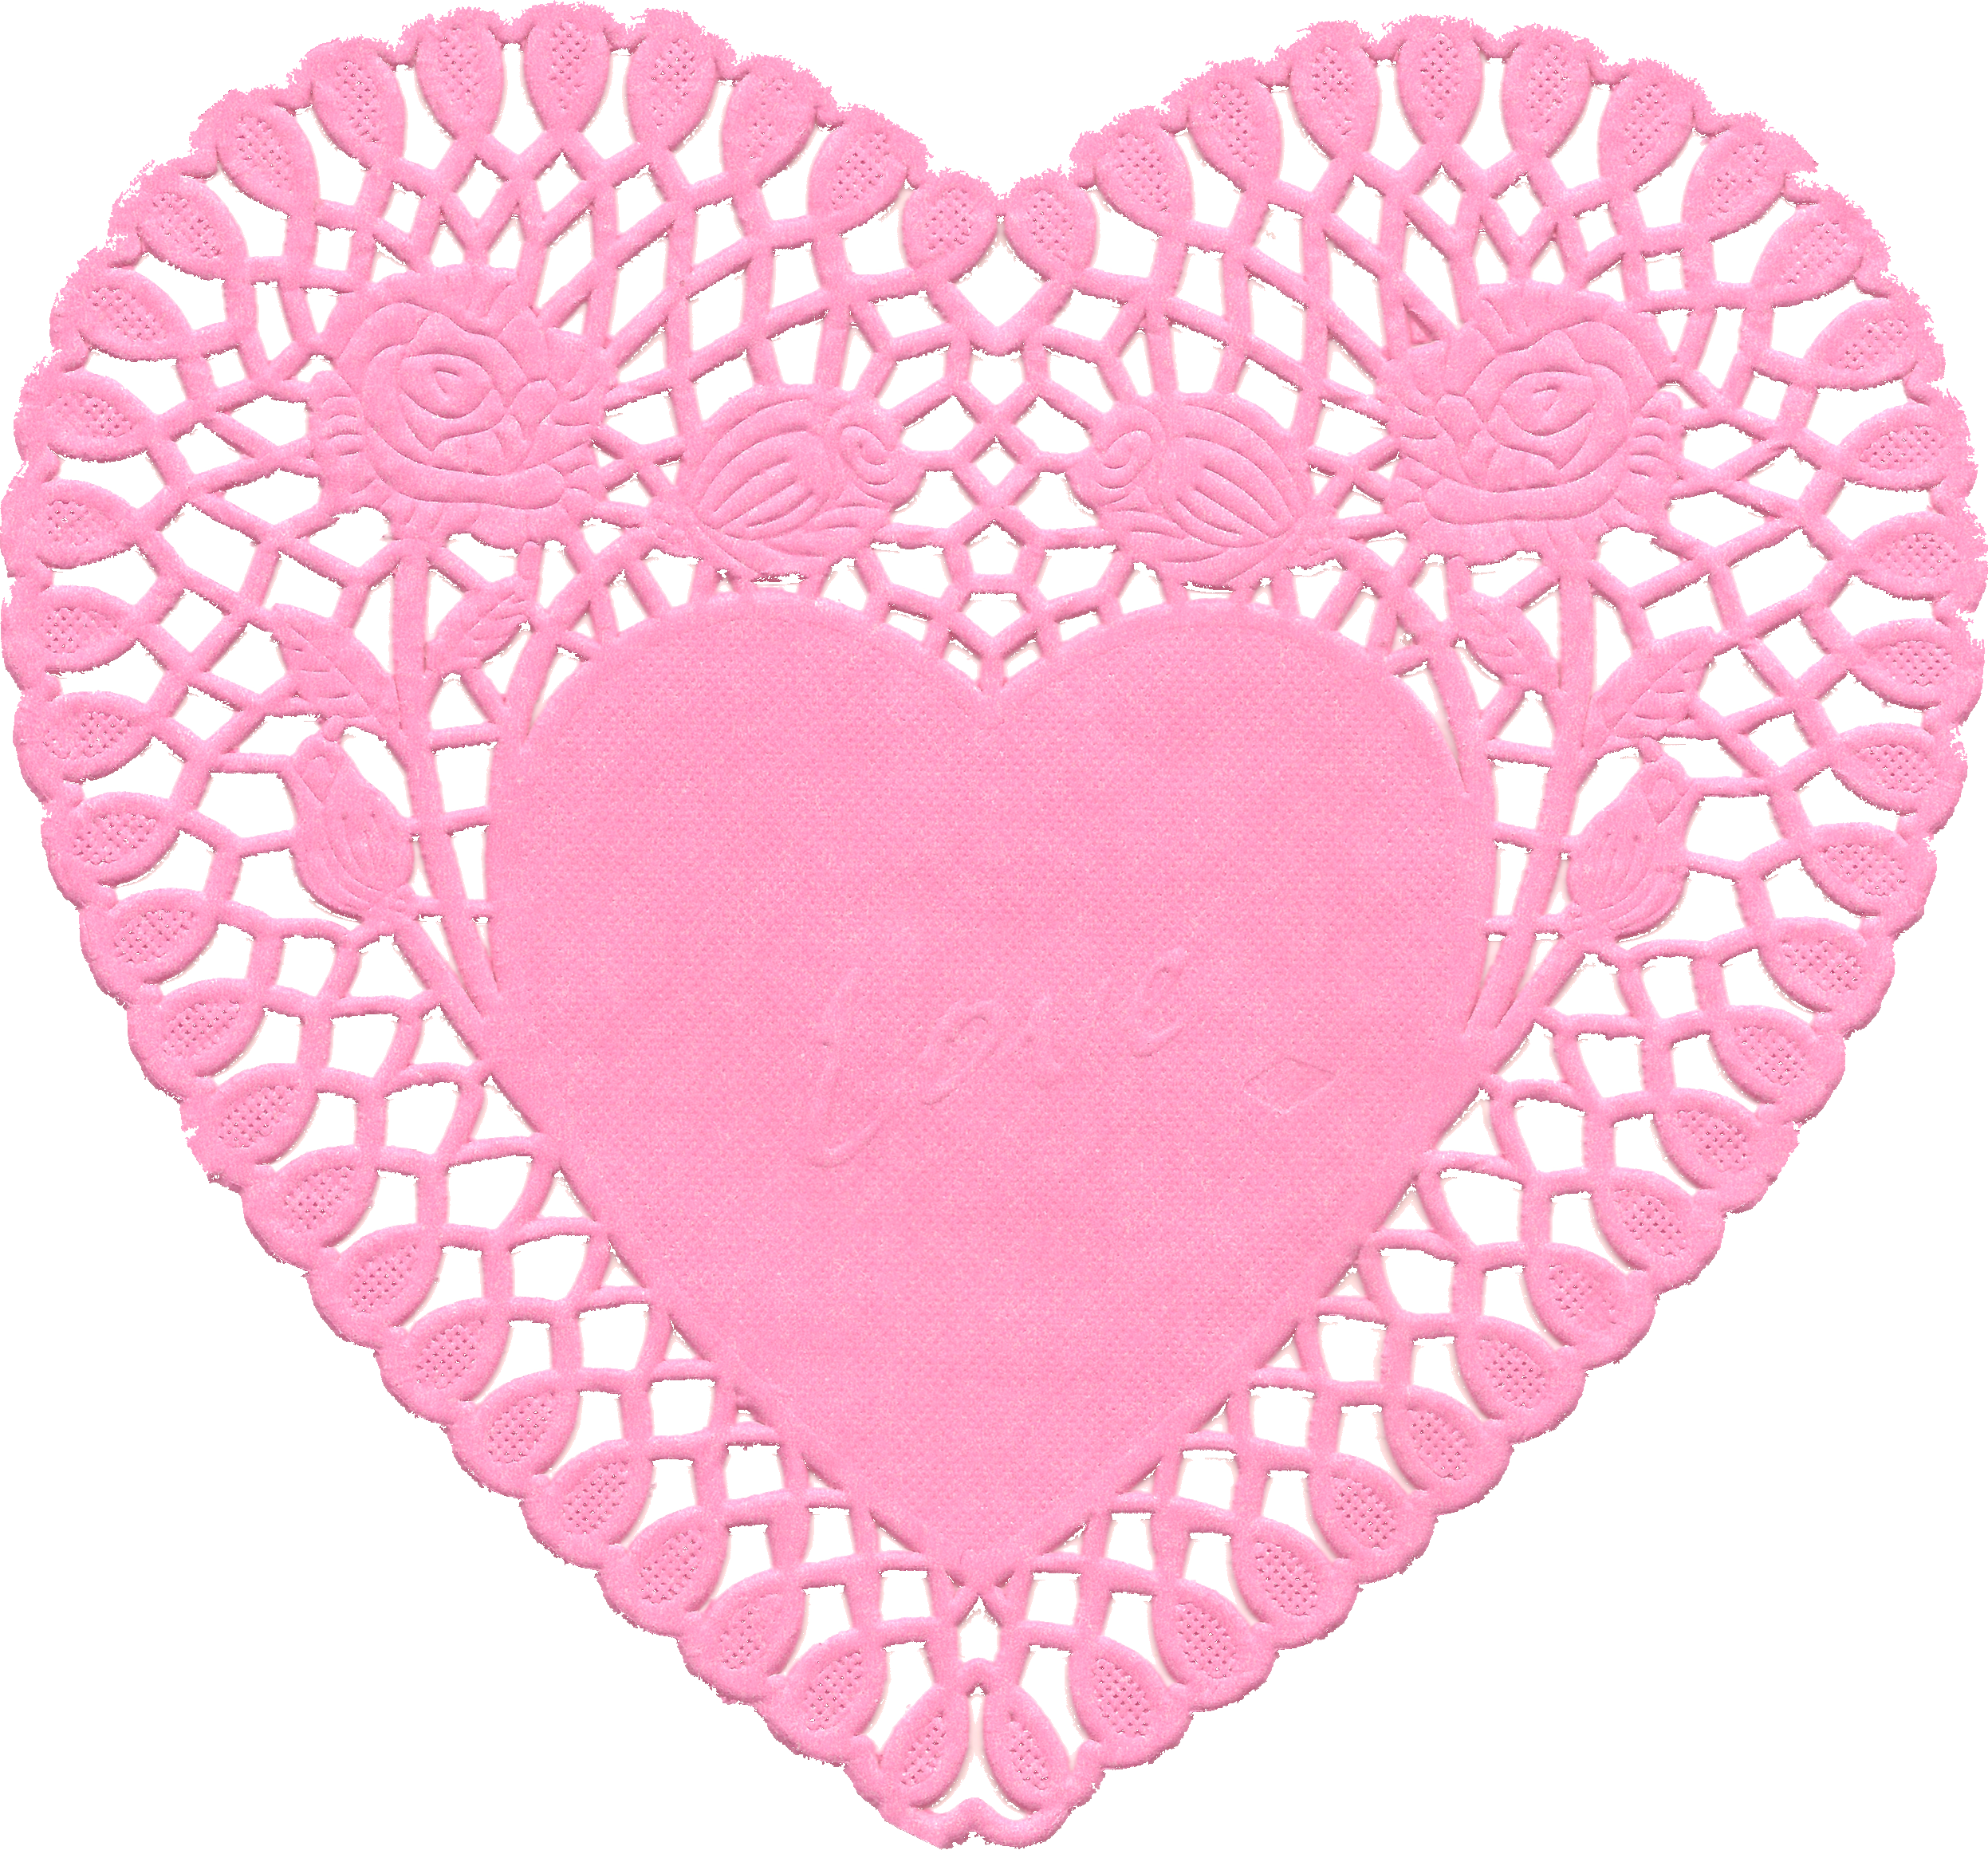 HD Doily Png Transparent PNG Image Download.